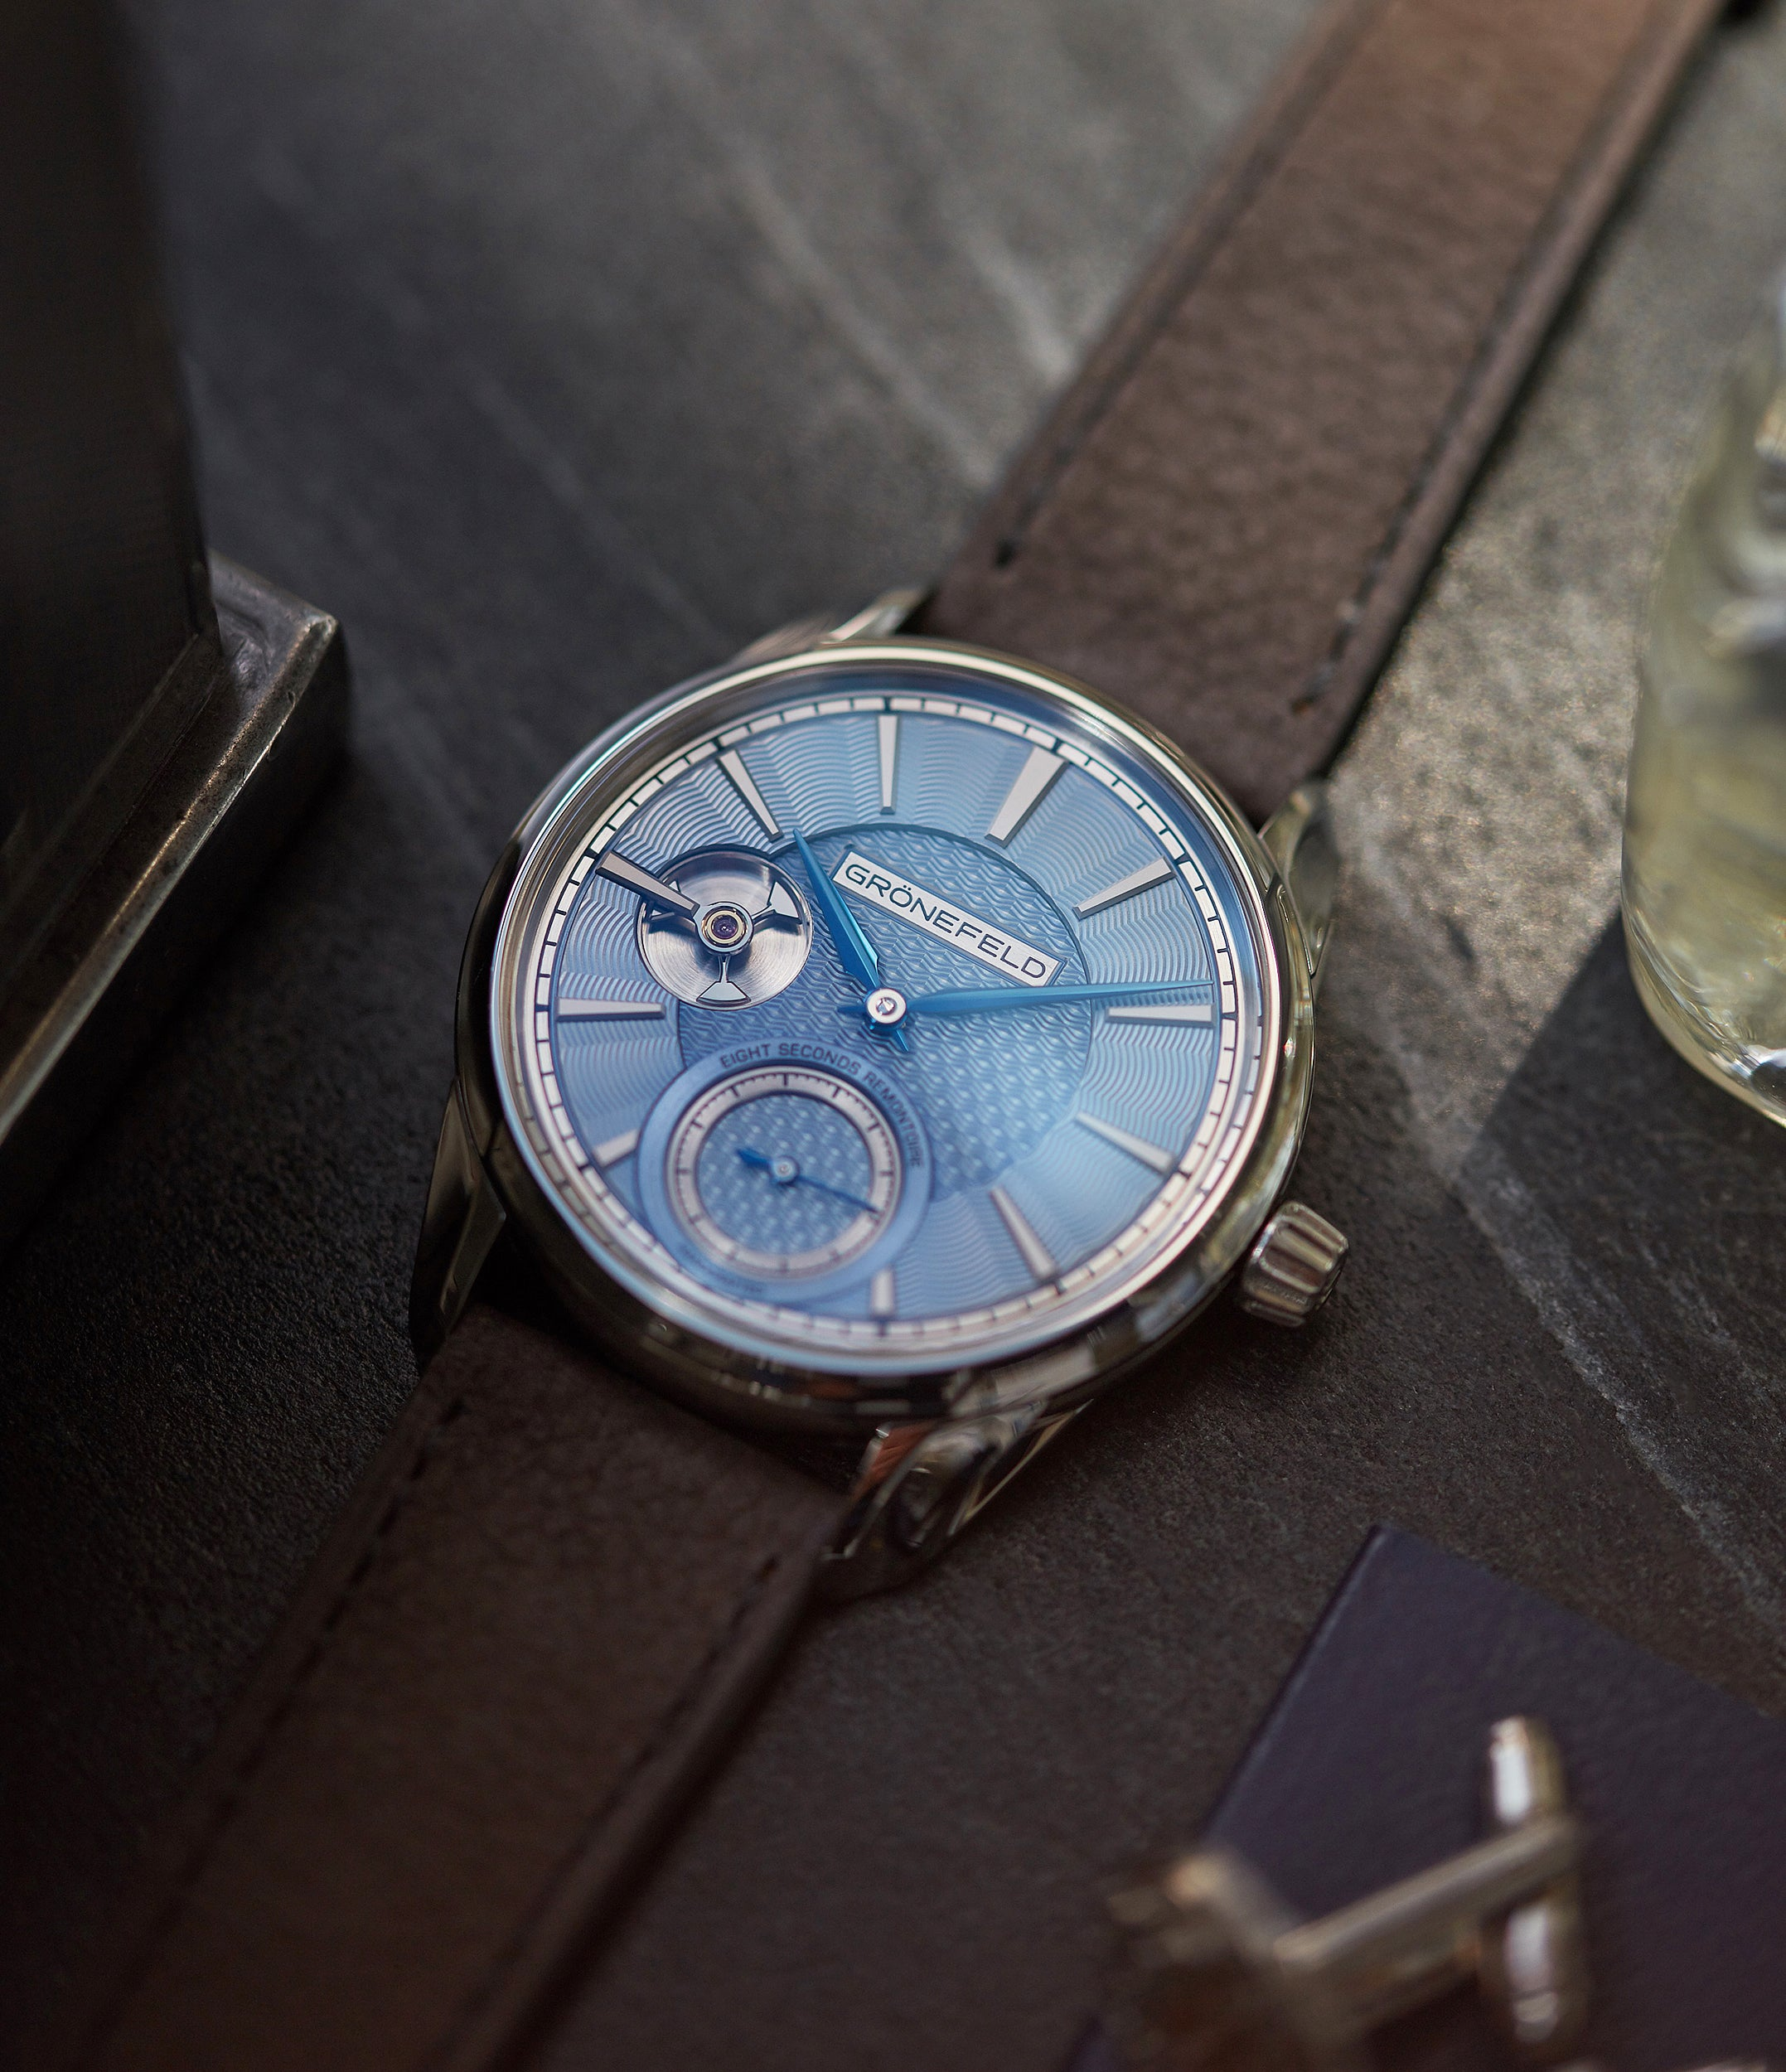 shop pre-owned Grönefeld 1941 Remontoire light blue Voutilainen dial eight seconds remontoire time-only dress watch for sale online at A Collected Man London UK specialist of independent watchmakers